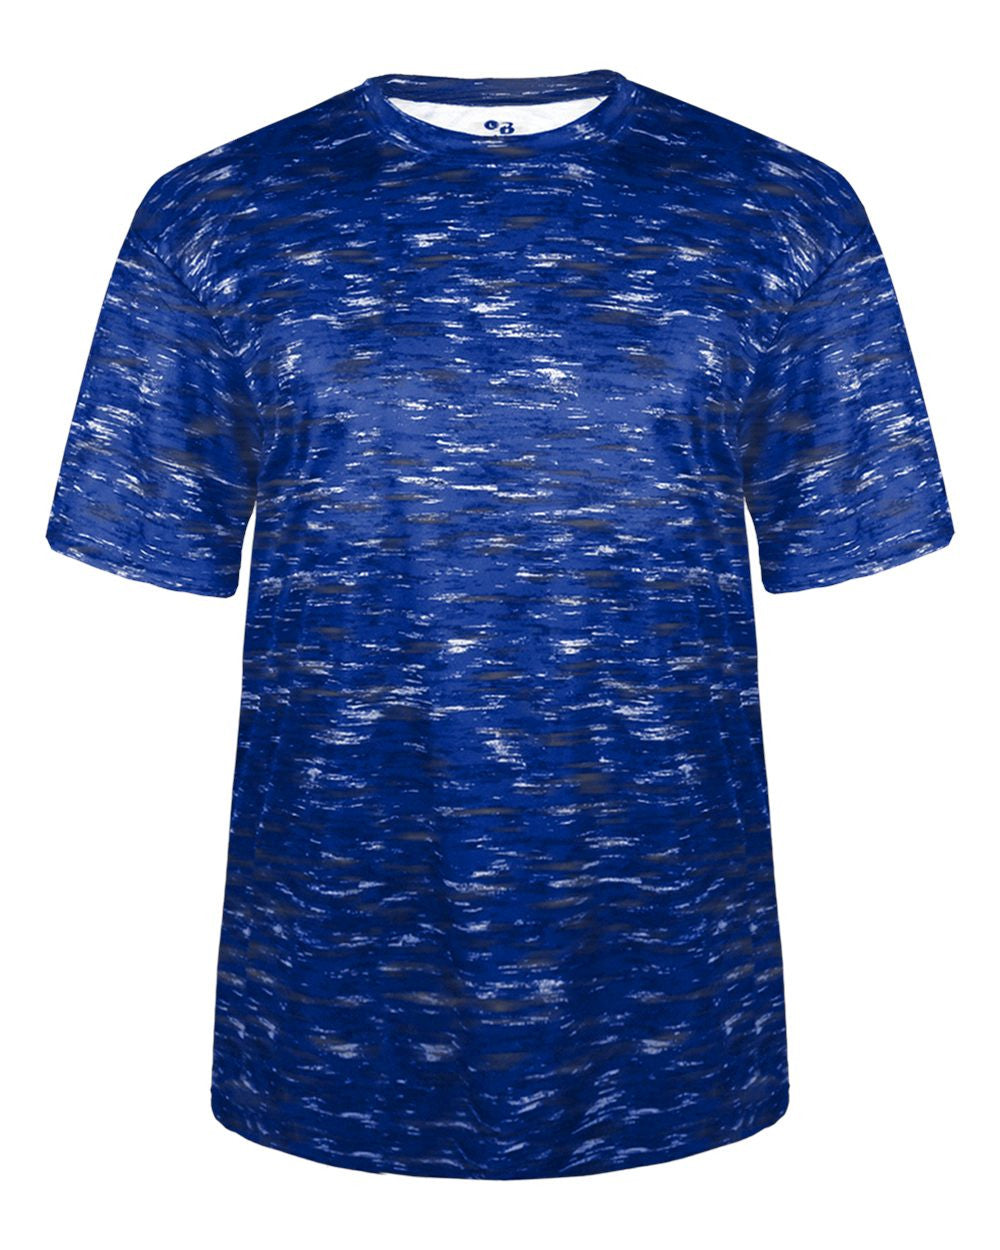 Vienna MUCKS Abundo Practice Tee - Royal Static